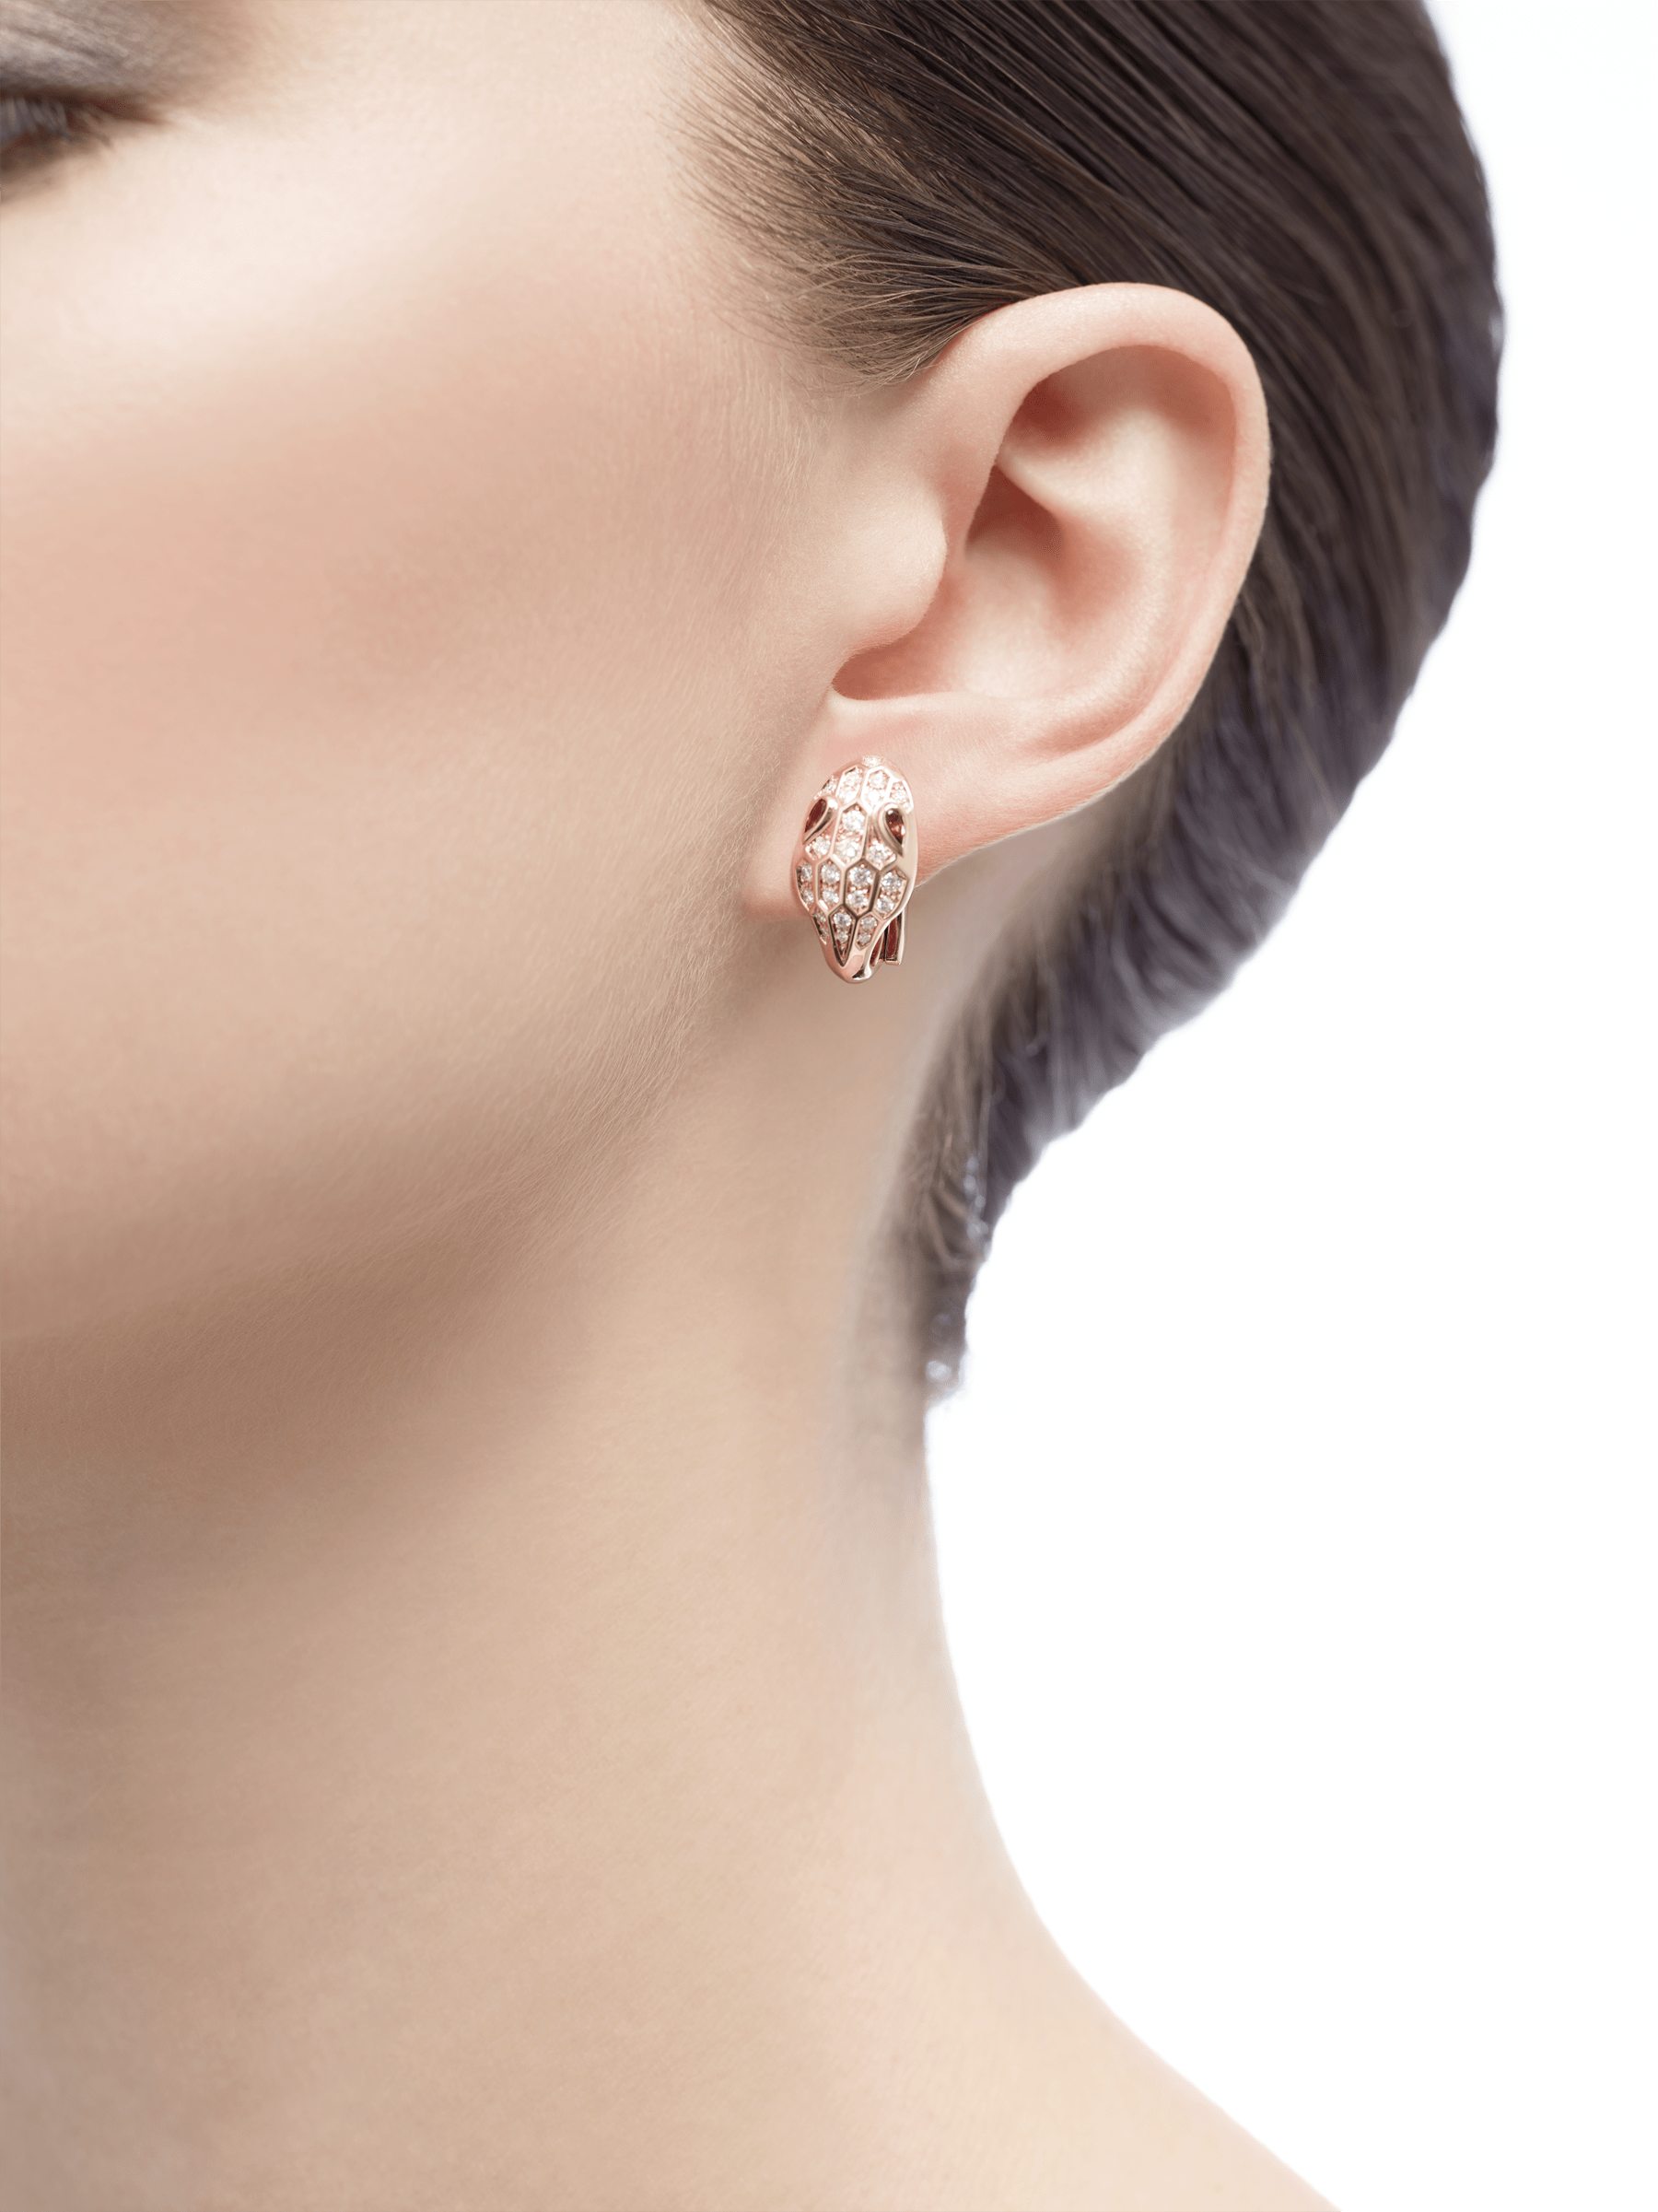 Serpenti earrings in 18 kt rose gold, set with rubellite eyes and full pavé diamonds. 352726 image 3